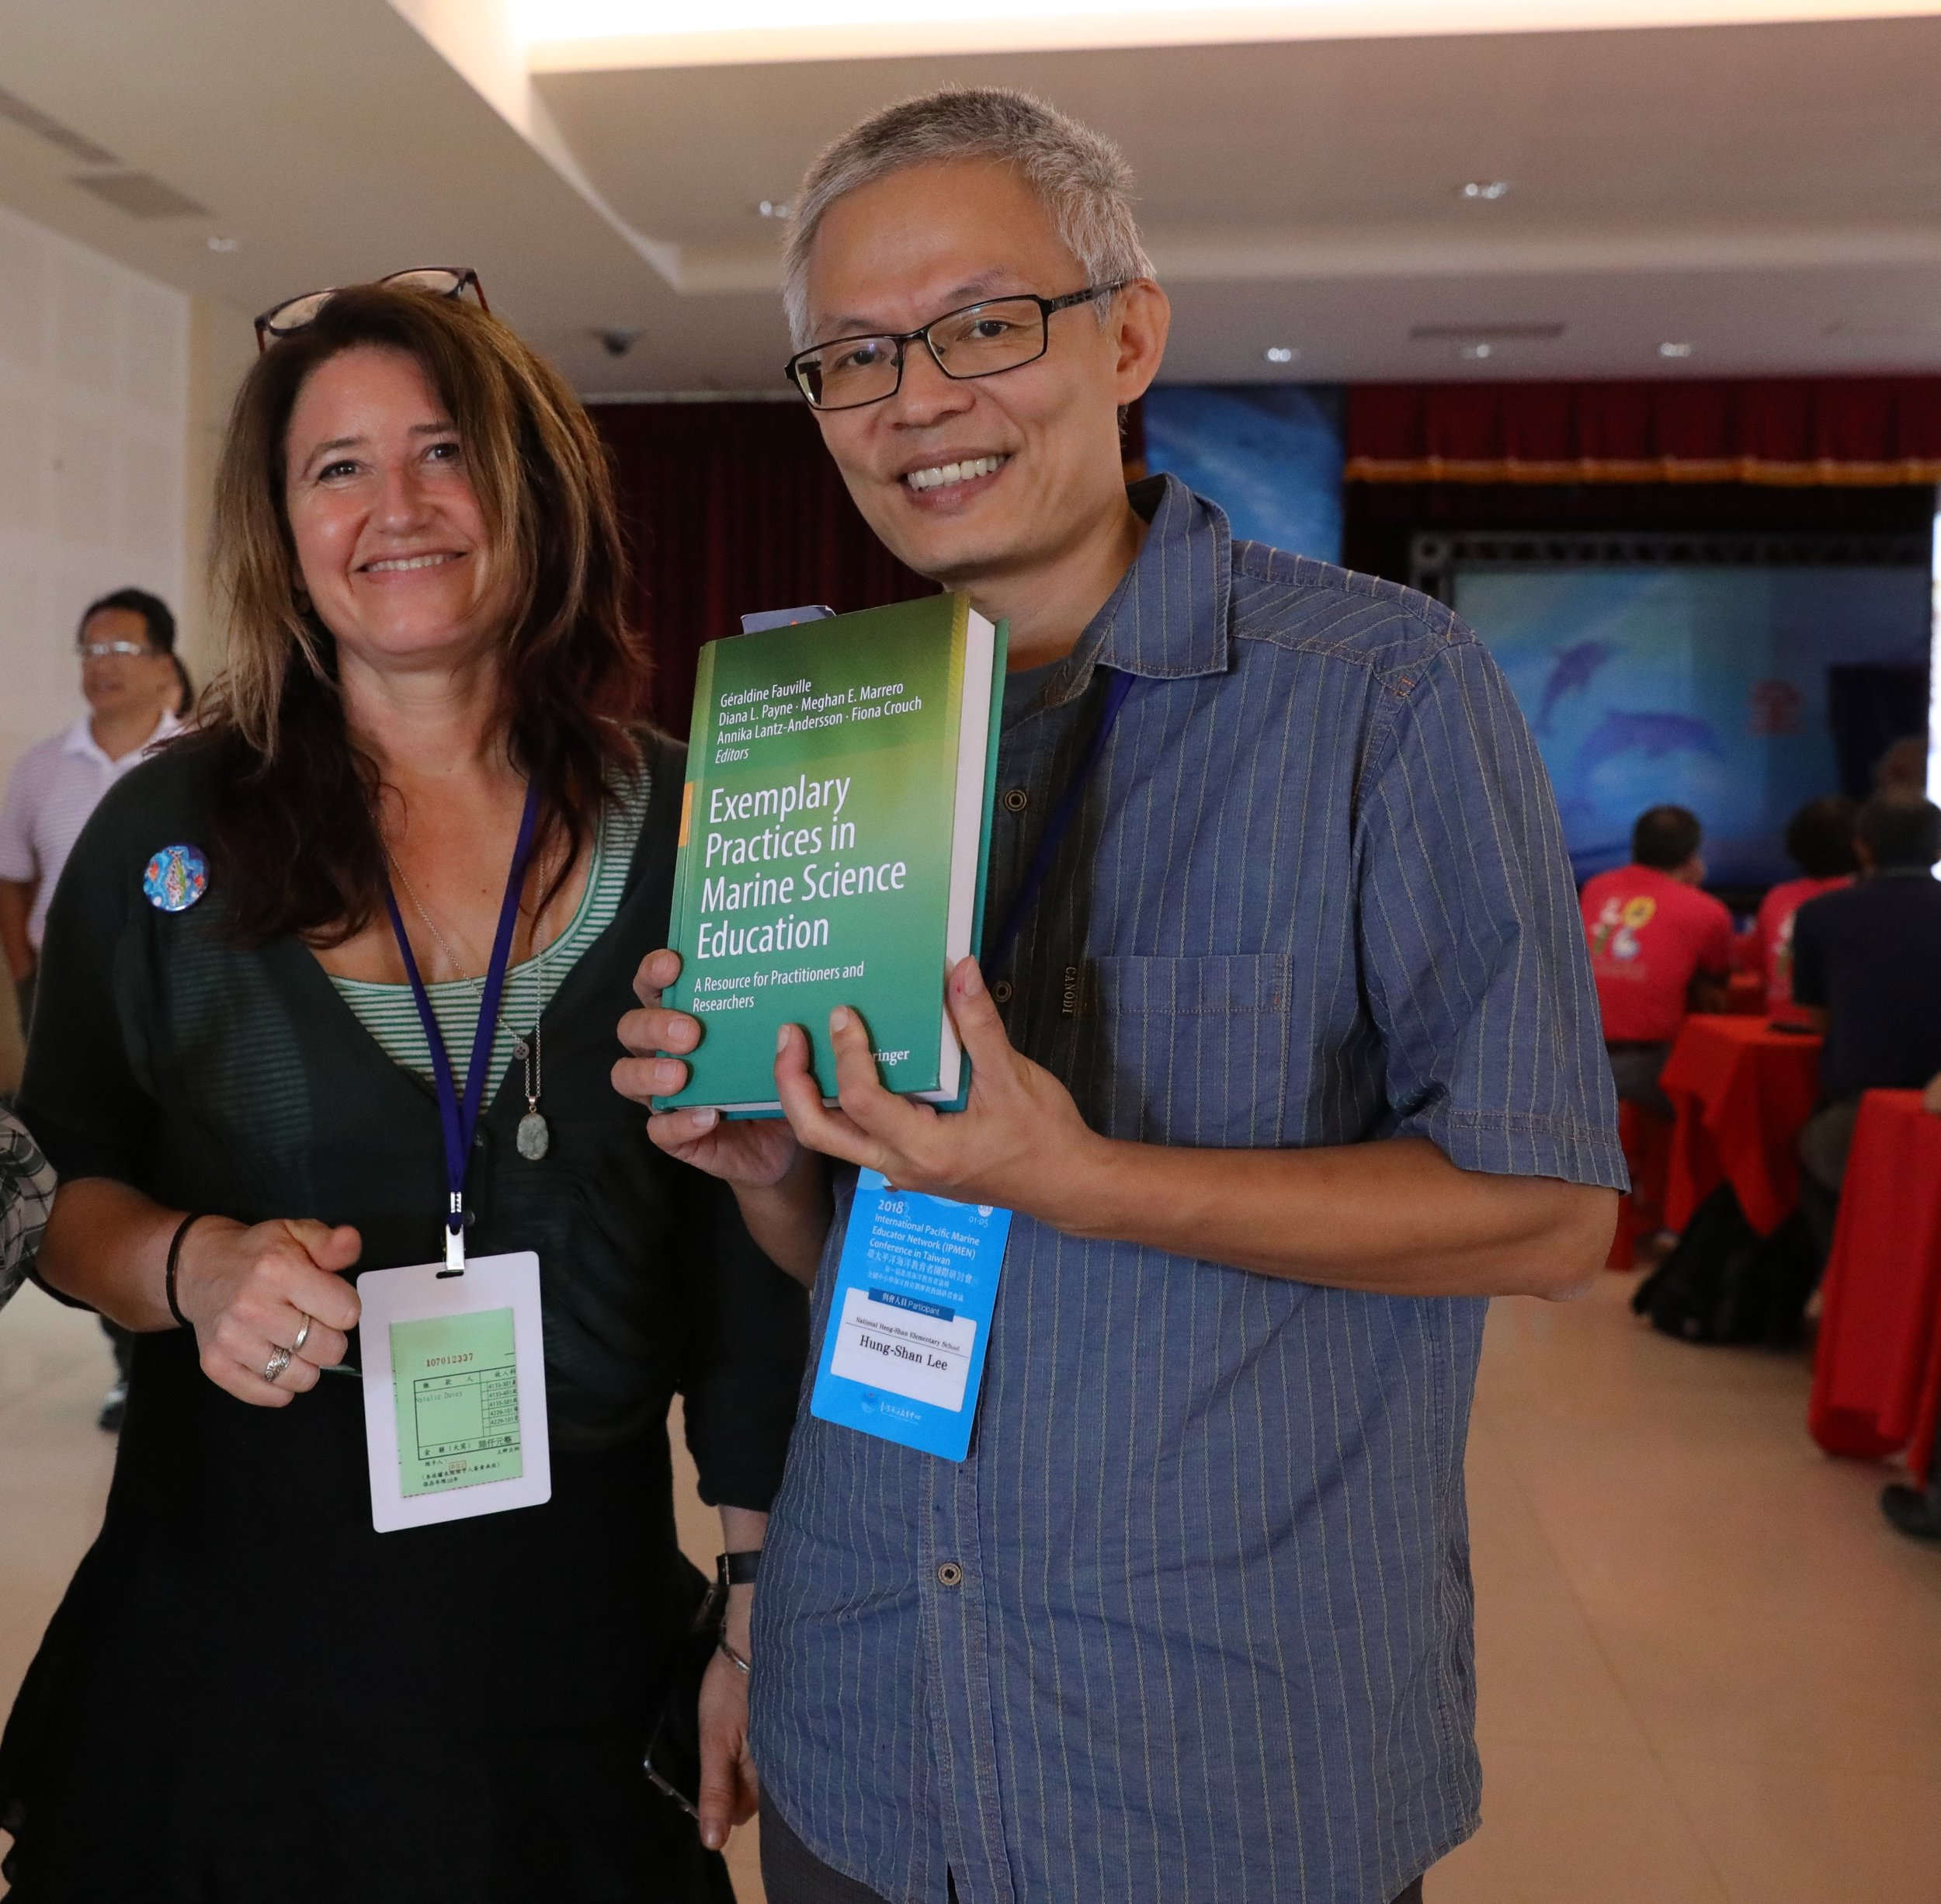 I met a fellow author from the book Rex (Hung-Shan Lee) is holding here. He has a piece inside called Marine Education Through Cooperation:  A Case Study of Opportunity in a Remote School in Taiwan . Lee is a true champion of marine education in Taiwan!